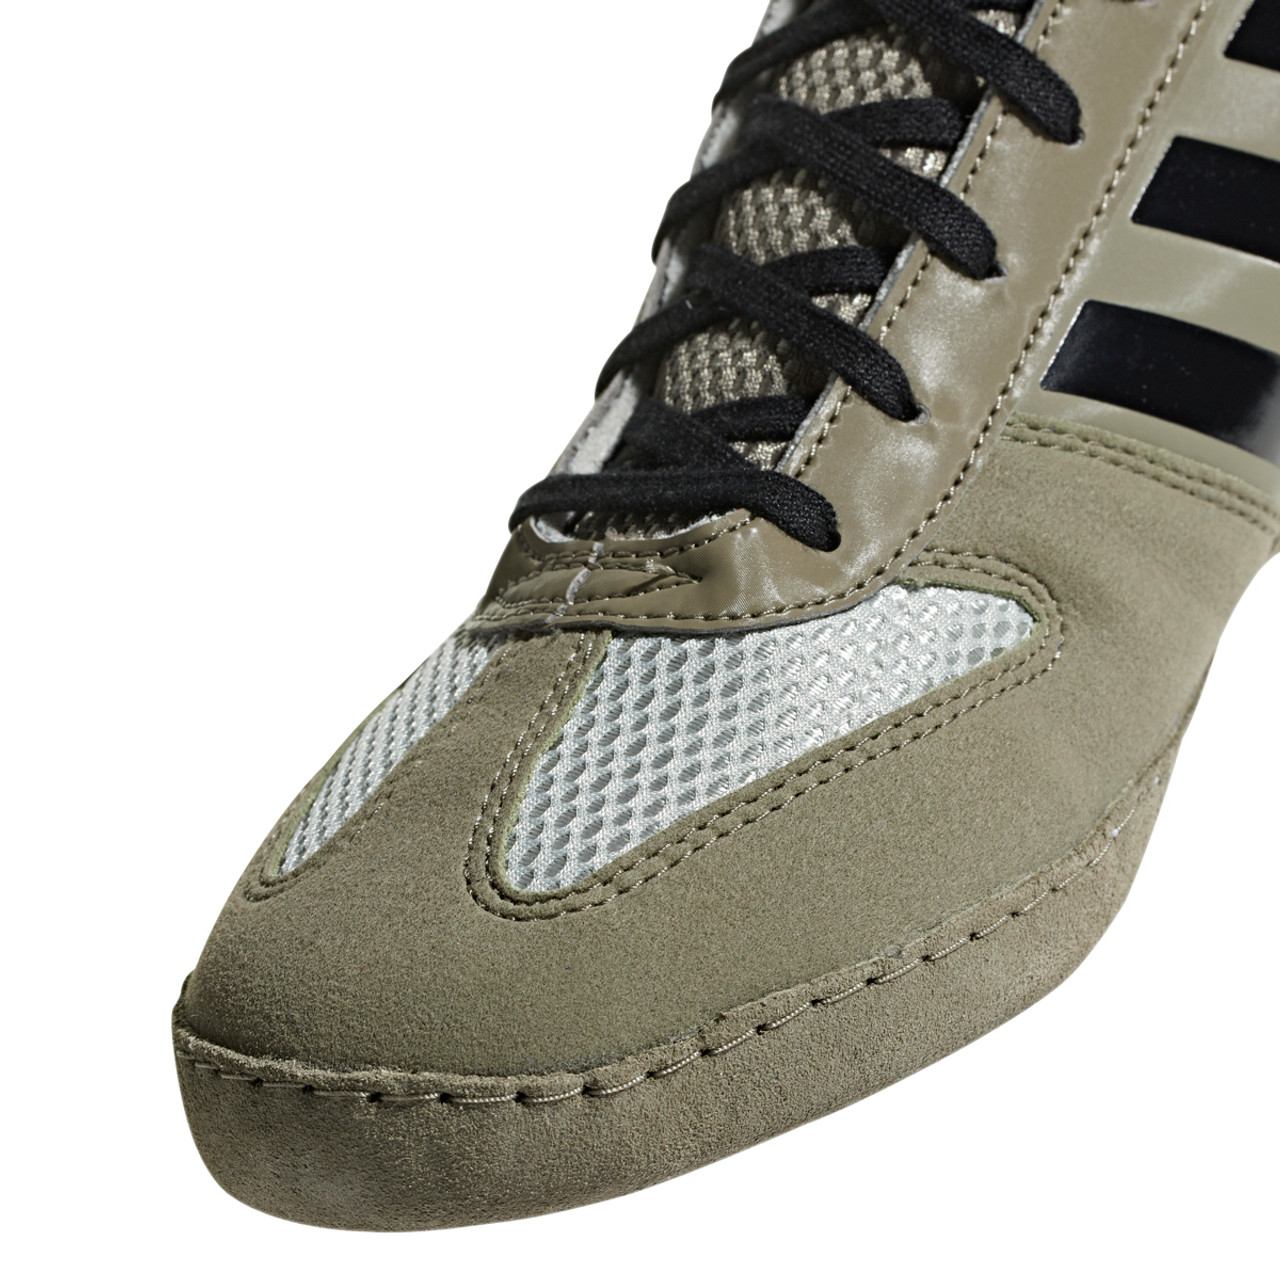 5aac8a0f35fcf9 Adidas Combat Speed 5 Men s Wrestling Shoes AC8709 - Tan